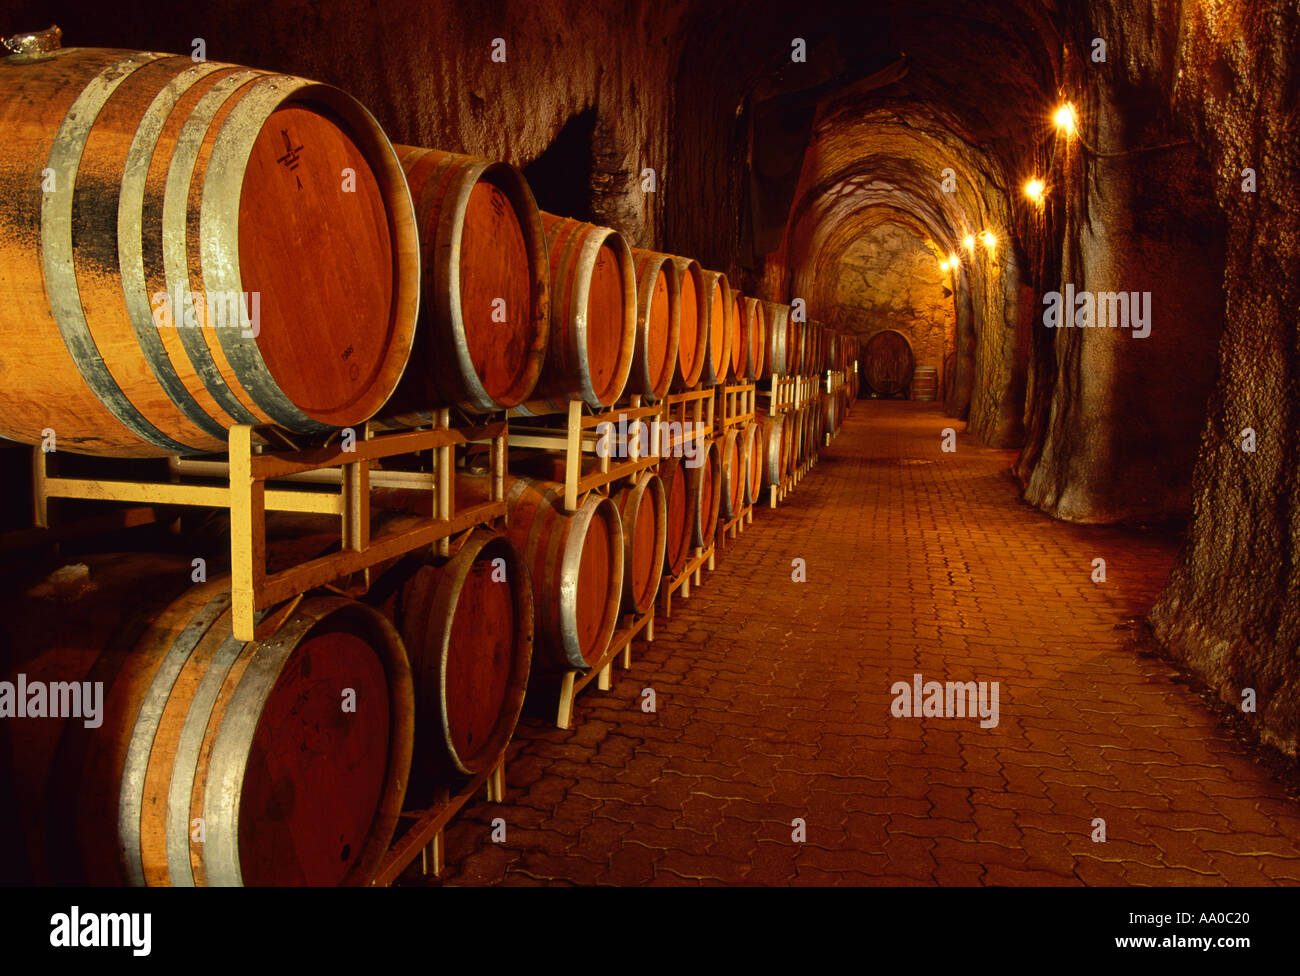 Agriculture - Wine caves at S. Anderson Winery / Napa Valley, California, USA. - Stock Image